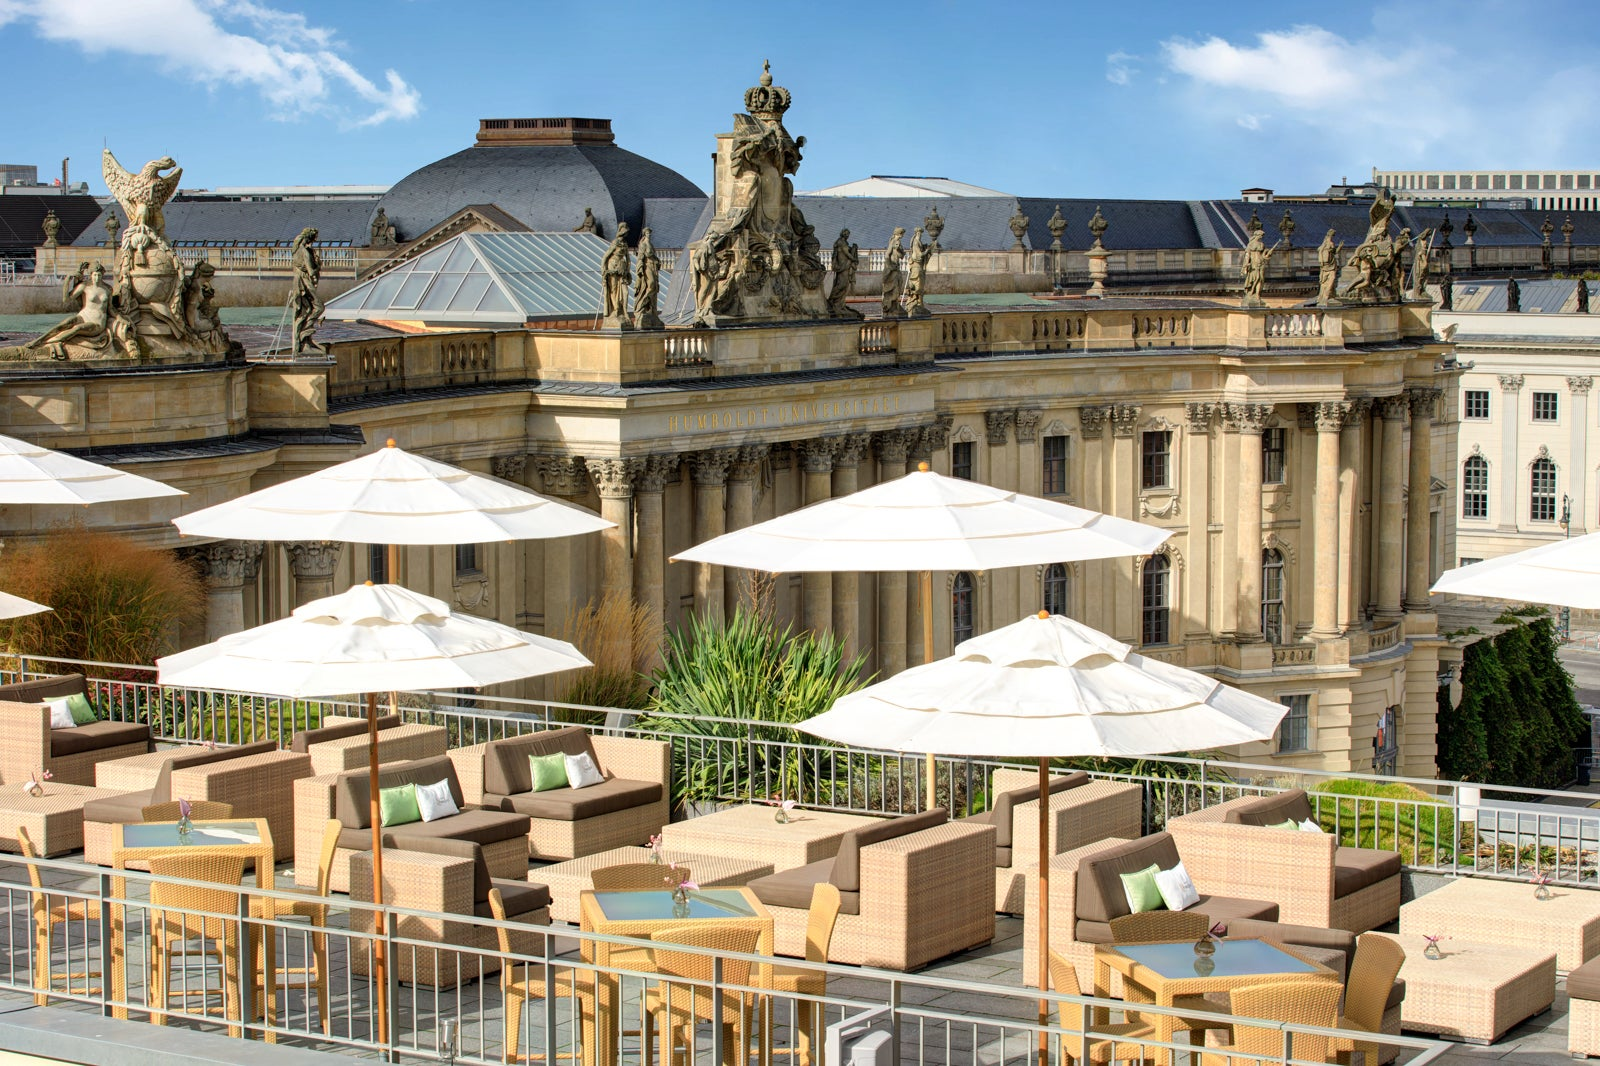 Berlin Hotels The Best Places To Stay For Budget And Luxury Breaks The Independent The Independent